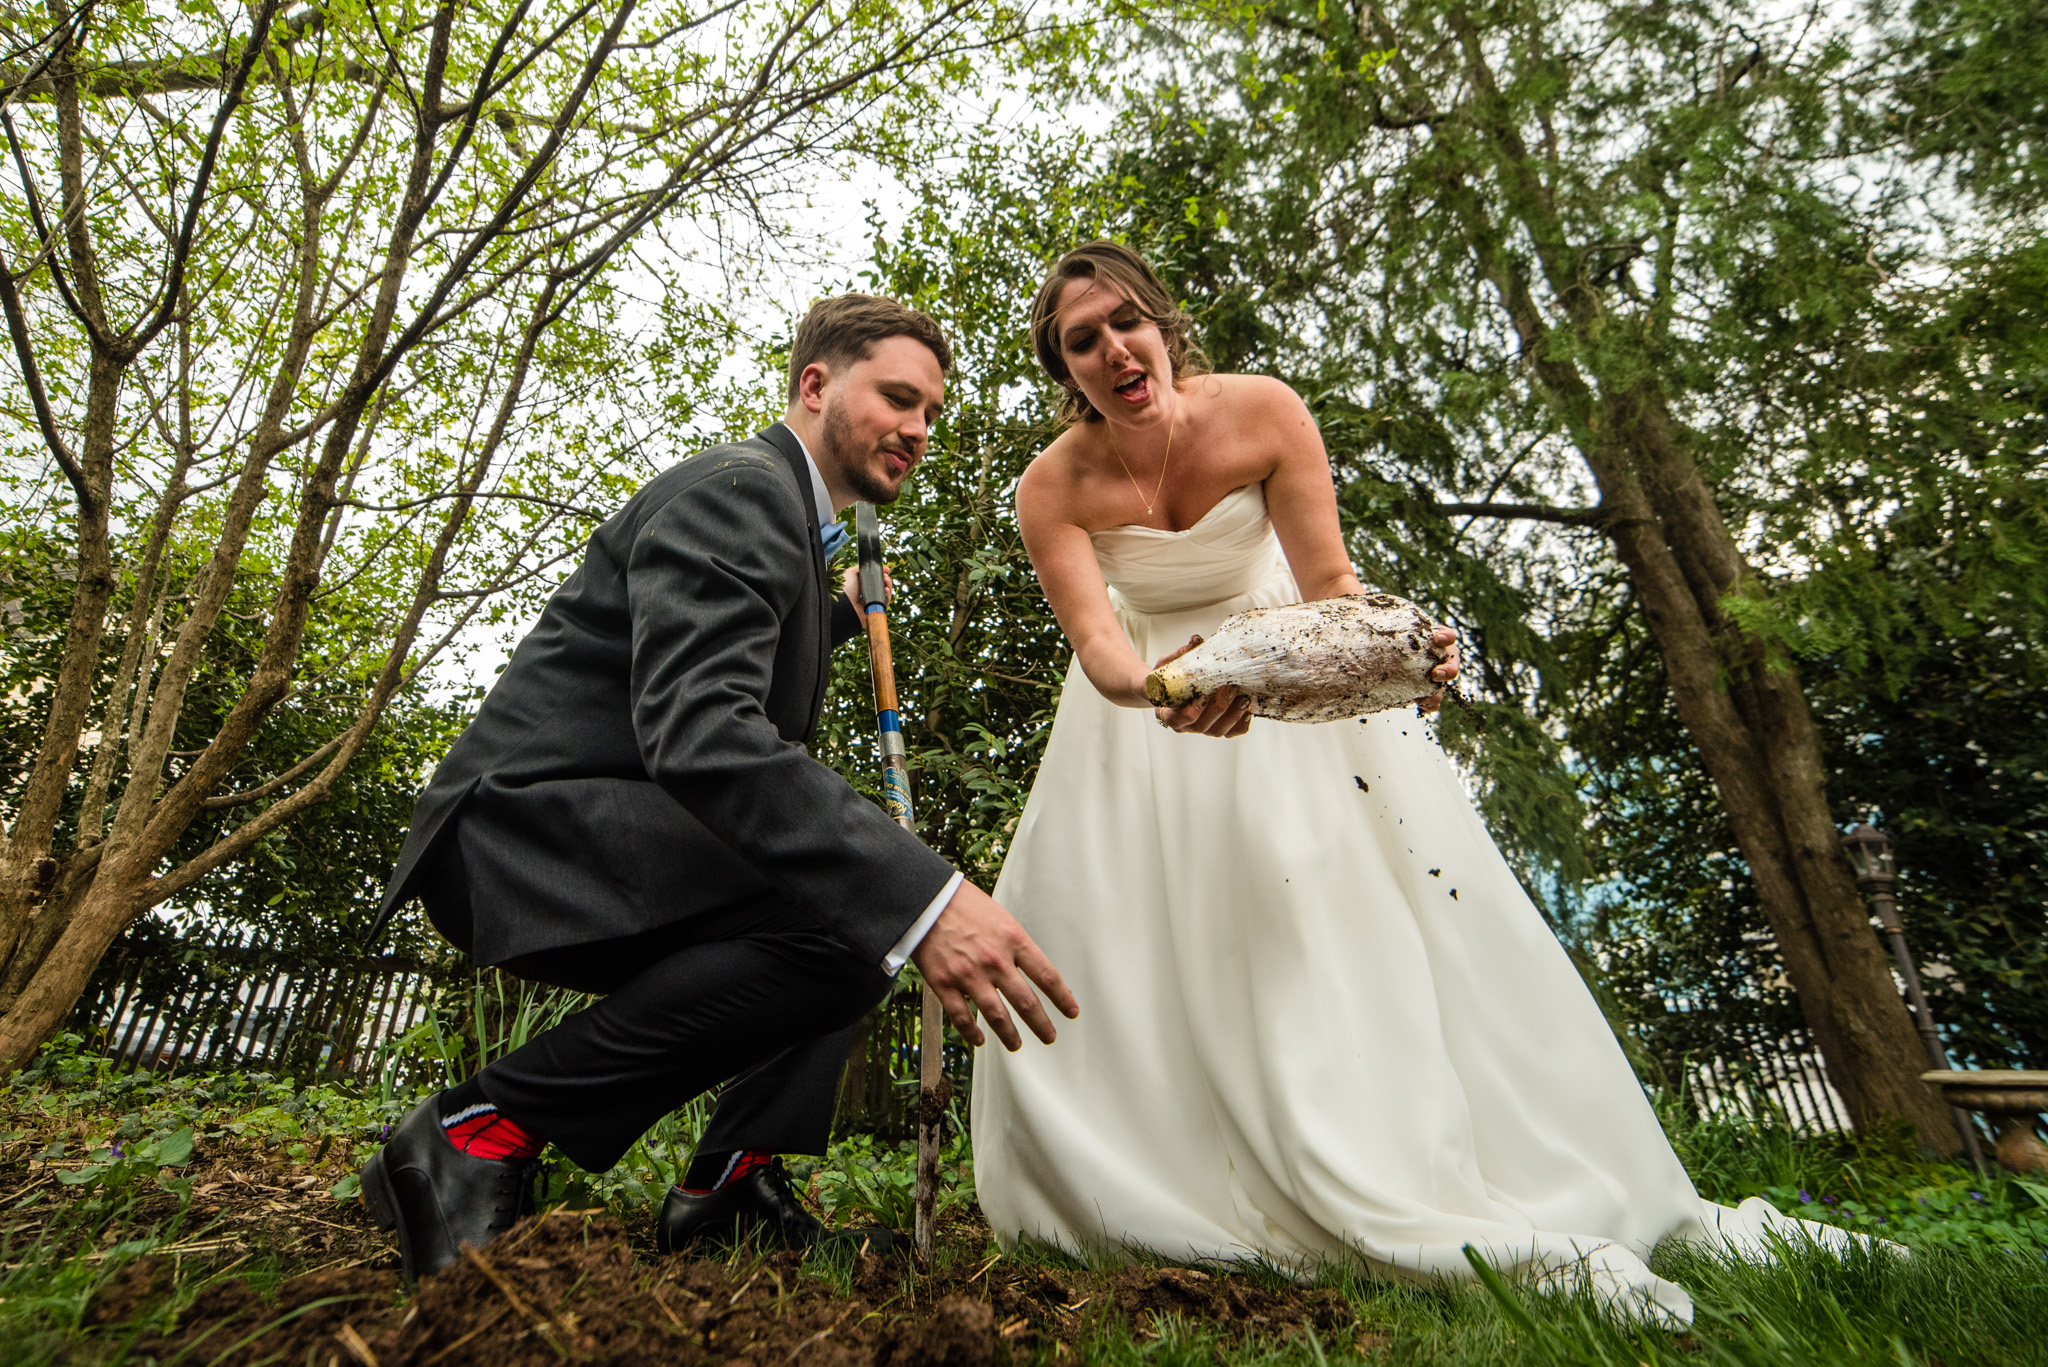 Mike and Jenna's wedding at Birkby House